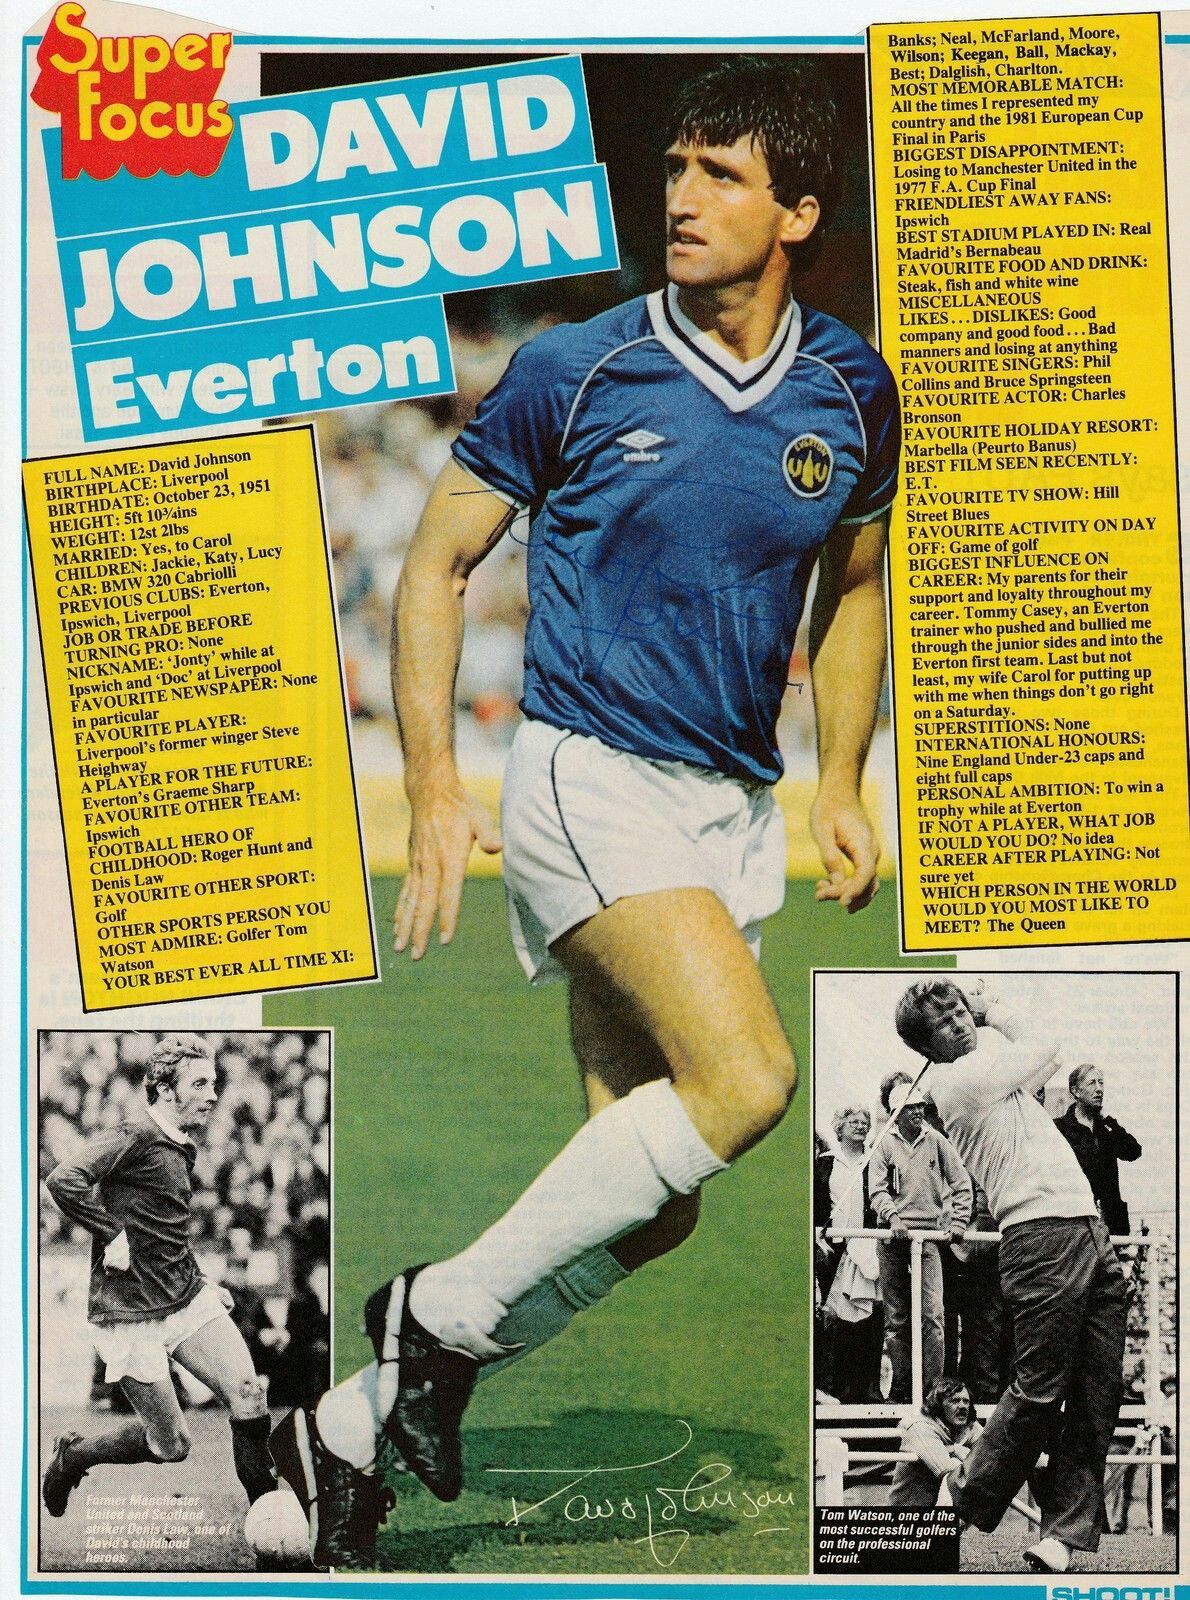 Focus on Everton's David Johnson